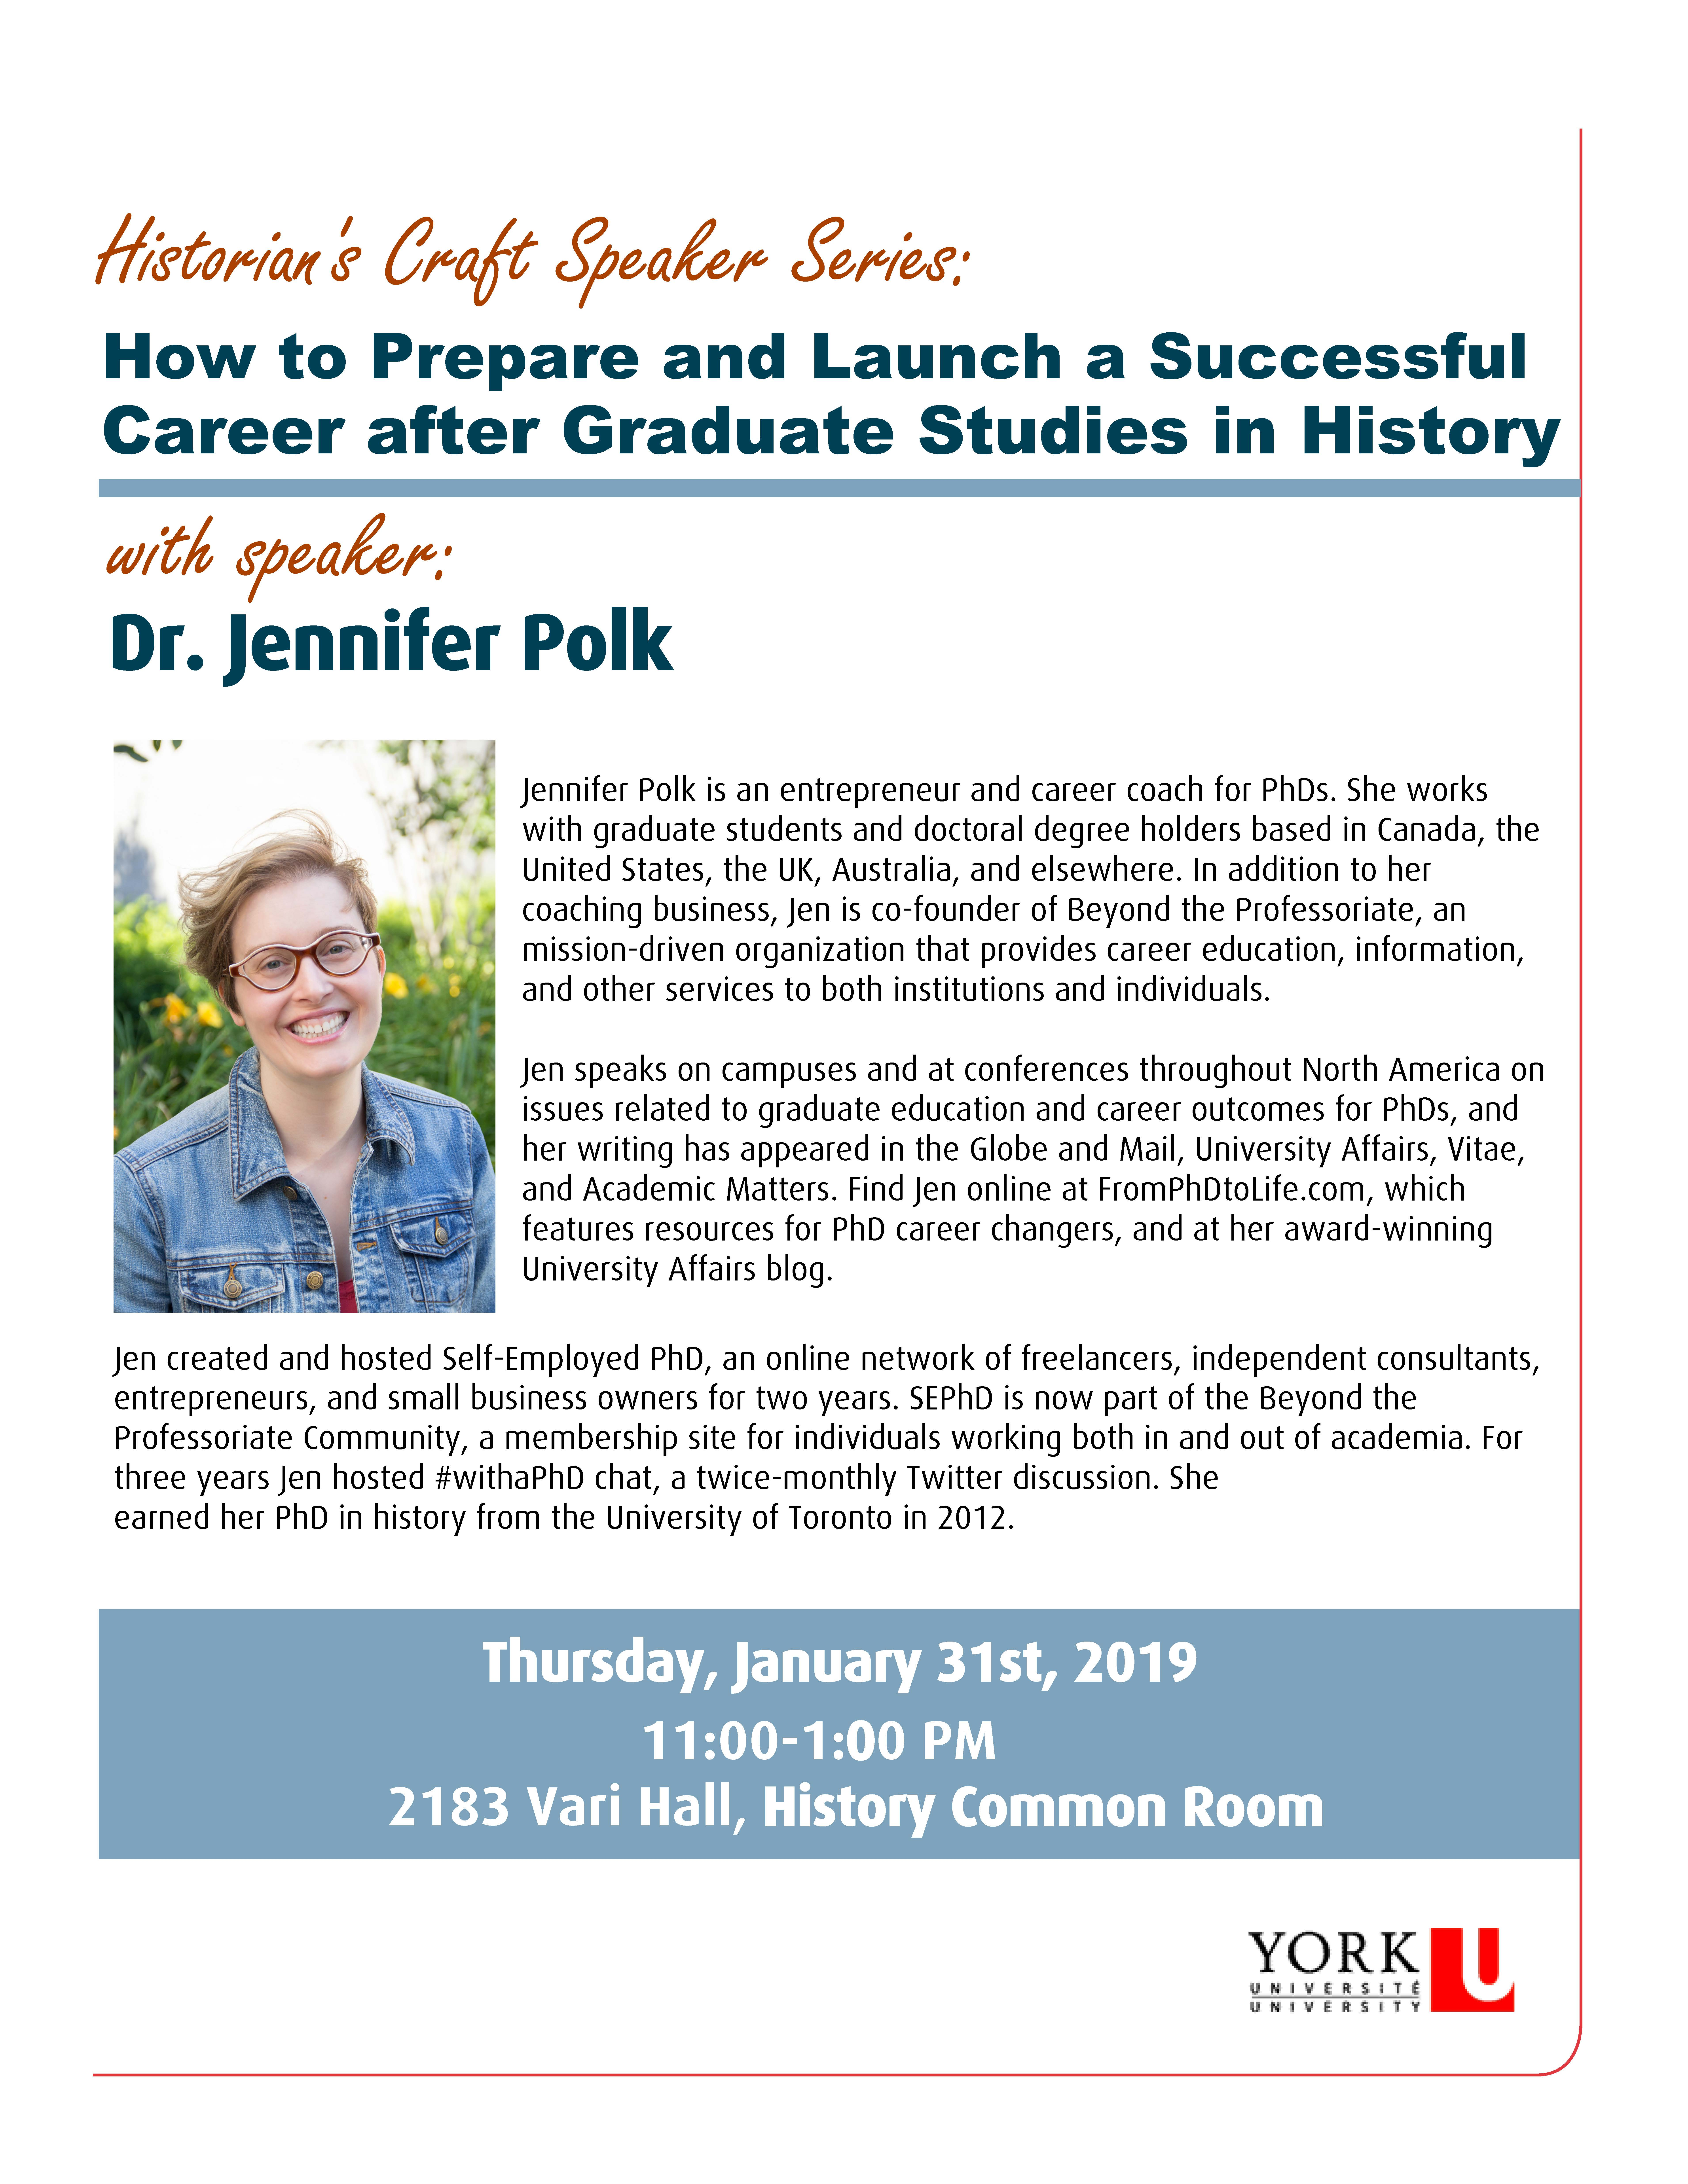 Historian's Craft Speaker Series: How to Prepare and Launch a Successful Career after Graduate Studies in History